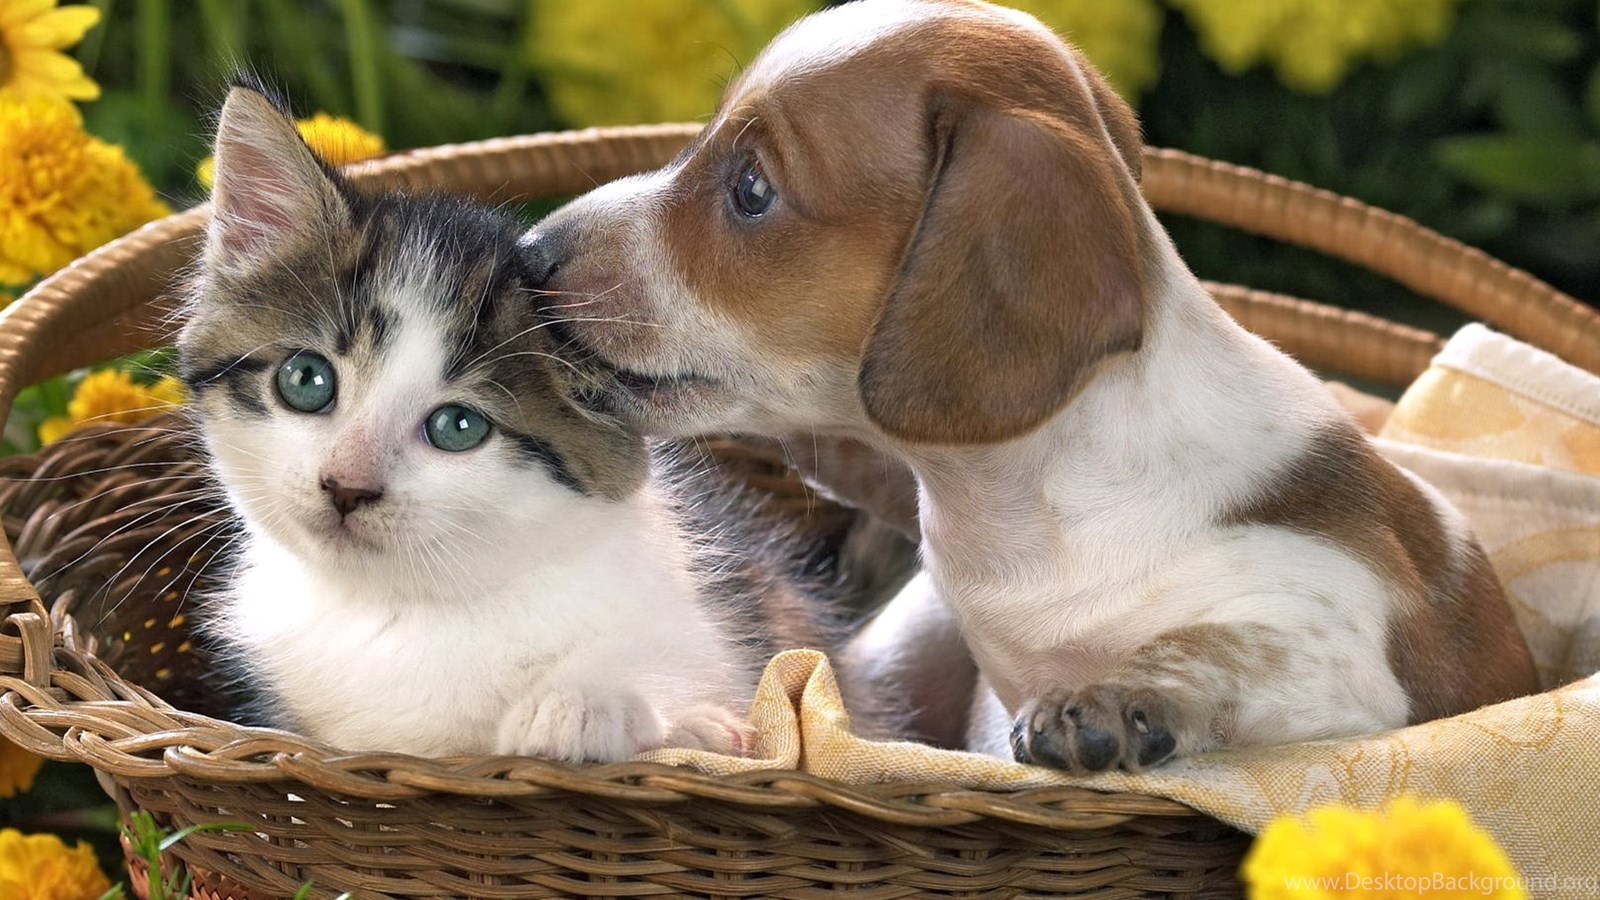 Puppy And Kitten Animal Wallpaper Hd Dog Photos Puppies Pets